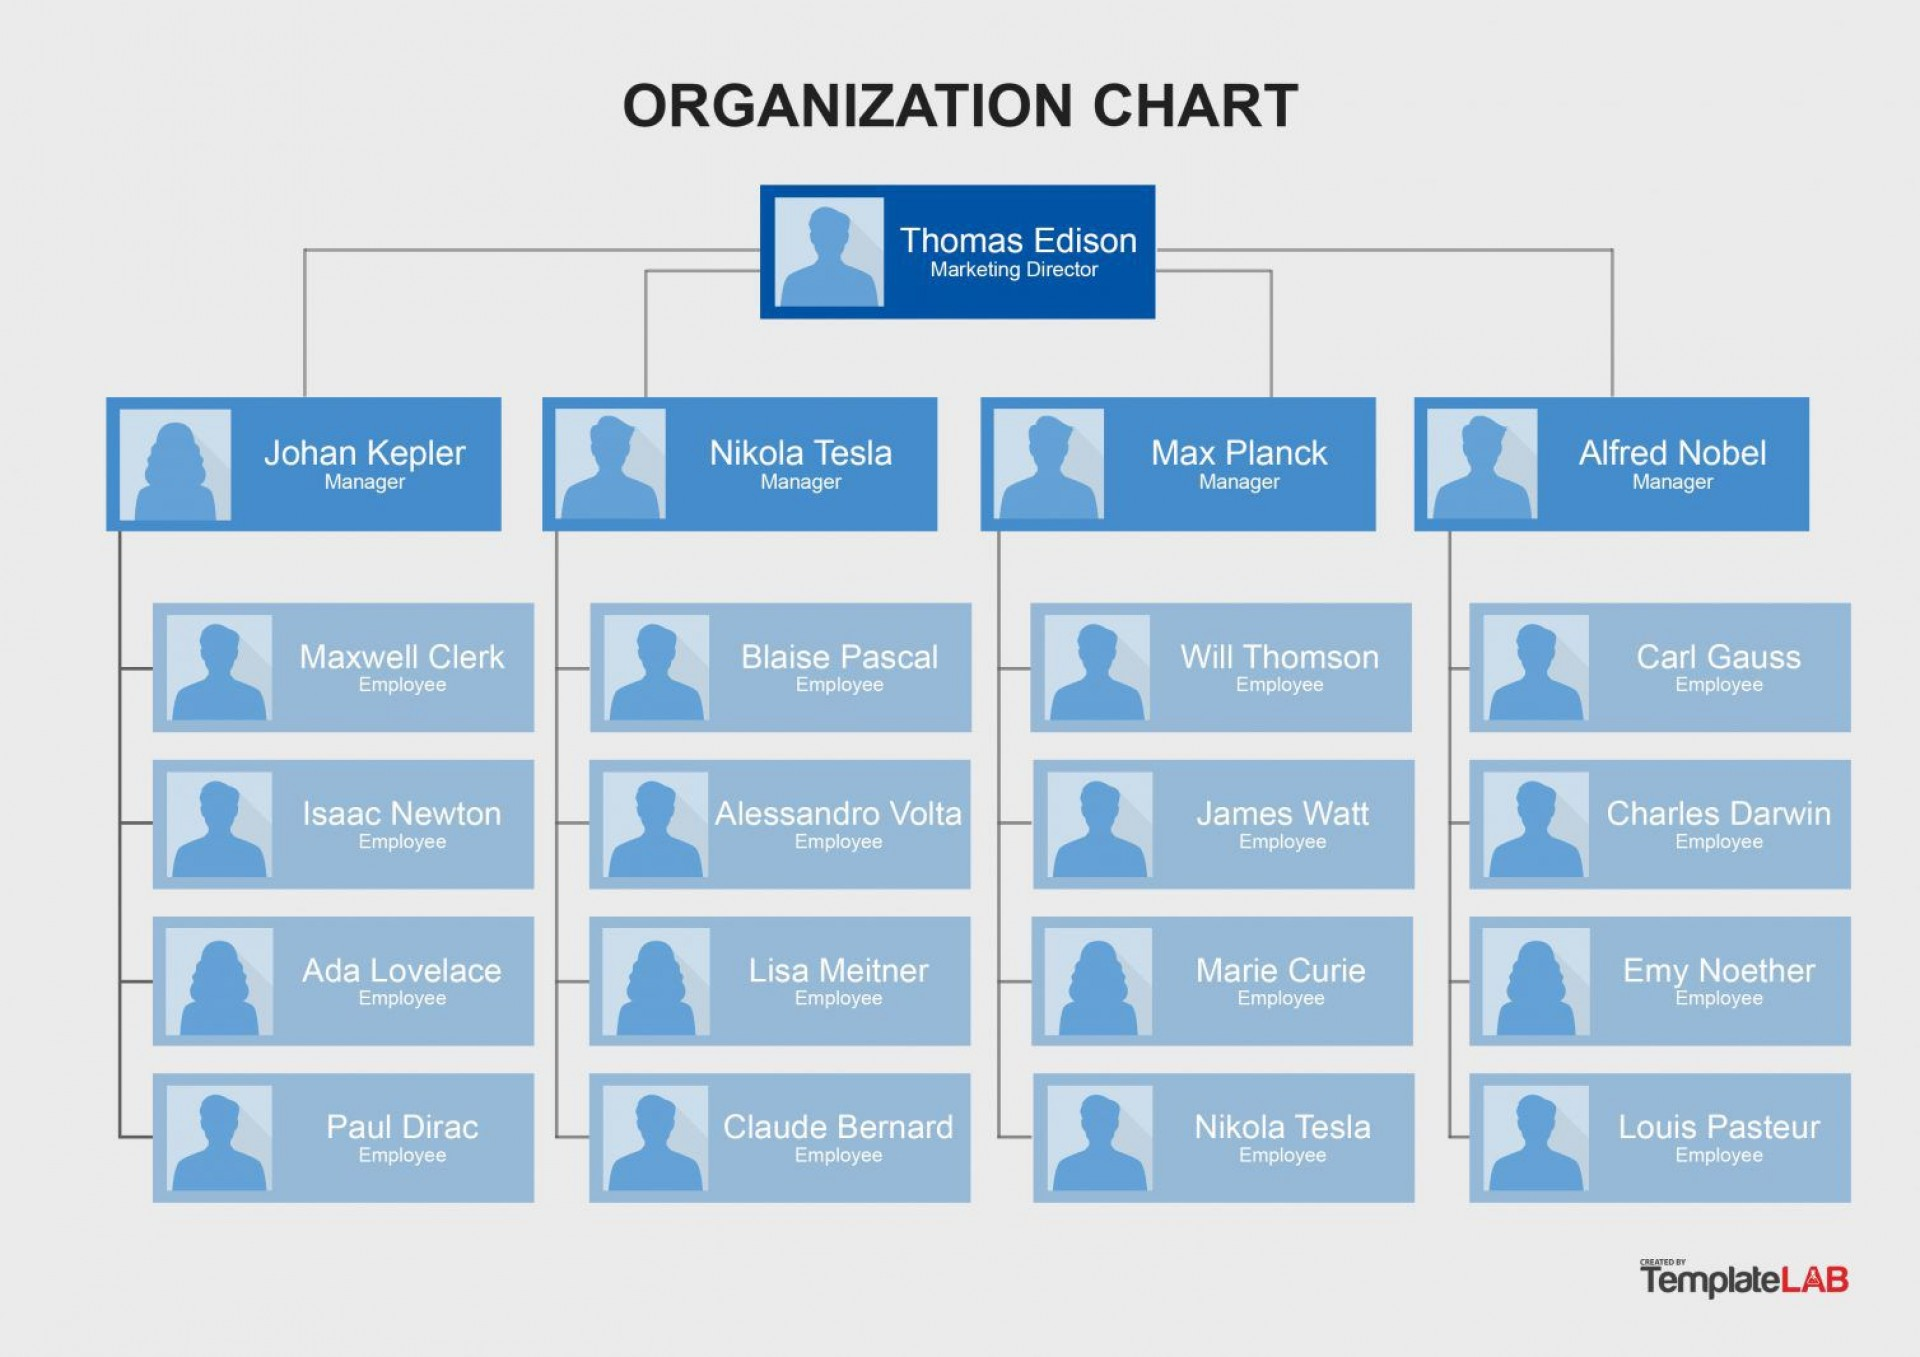 006 Impressive Organizational Chart Template Word Sample  2010 2007 Free Download1920